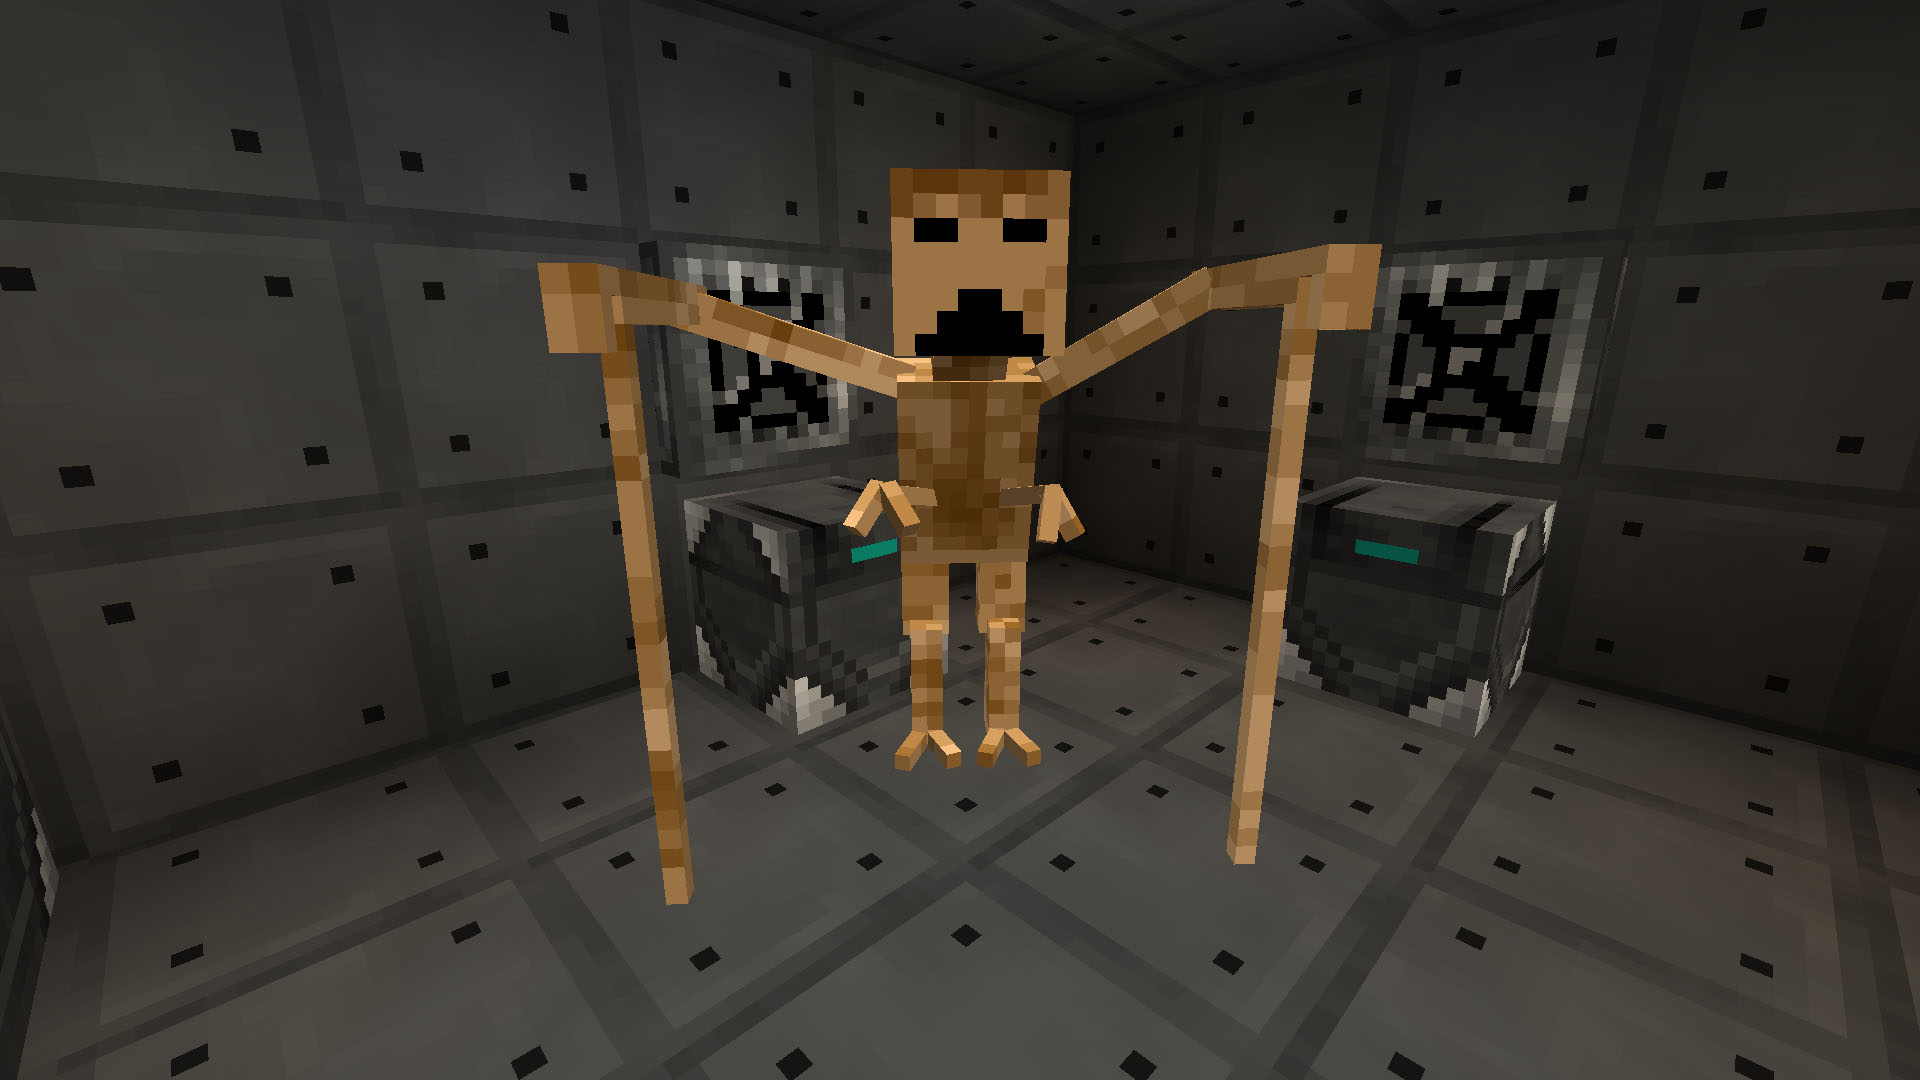 http://minecraft-forum.net/wp-content/uploads/2013/05/c6a3b__Dead-Space-Mod-2.jpg